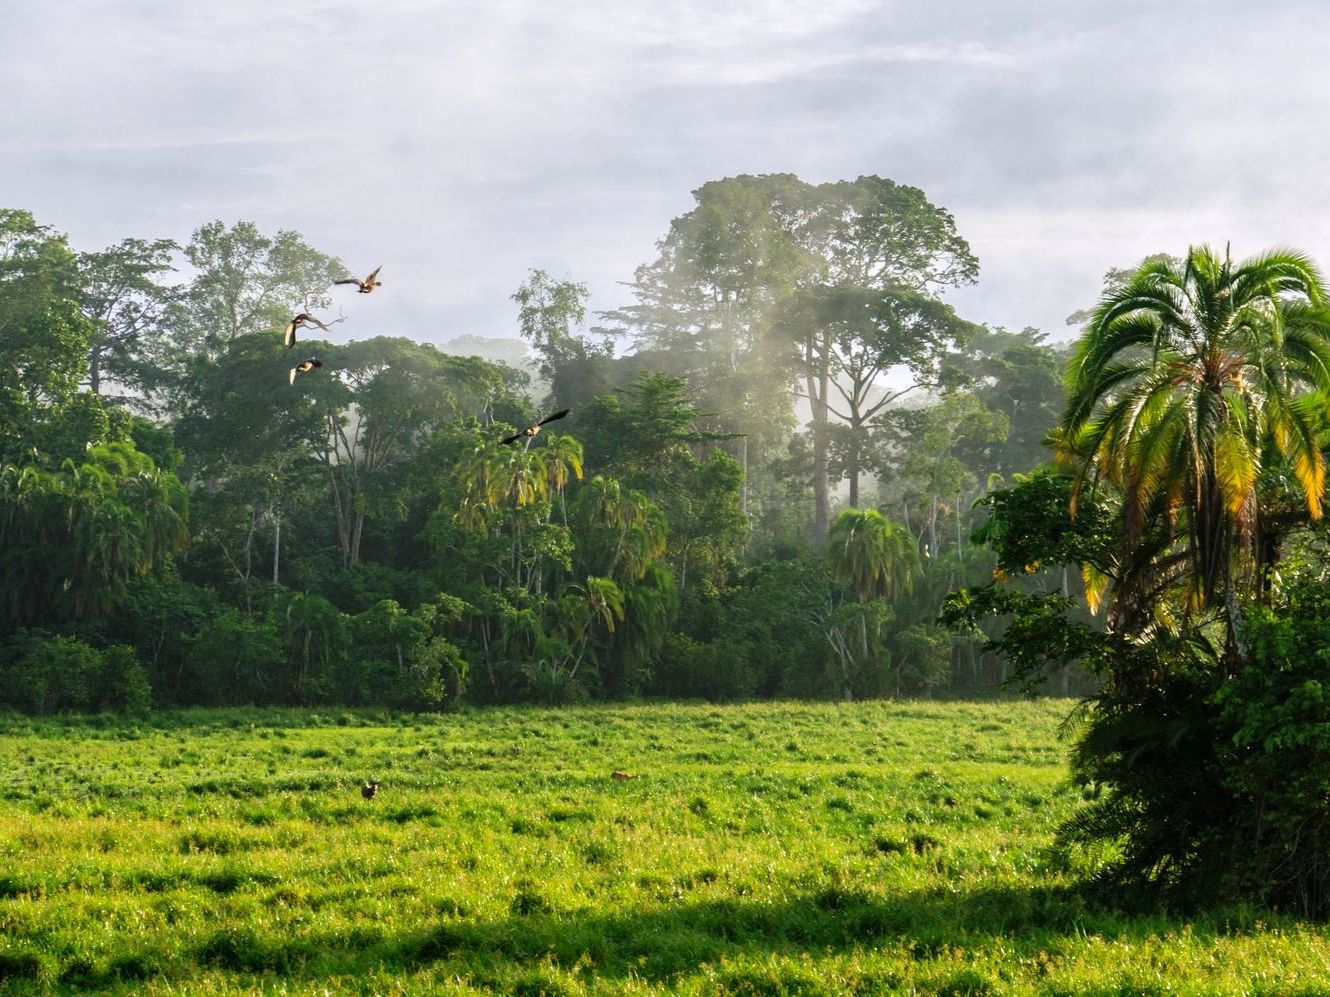 Lobéké National Park in Cameroon (Image with kind permission by: Philipp Laage | www.philipplaage.de)